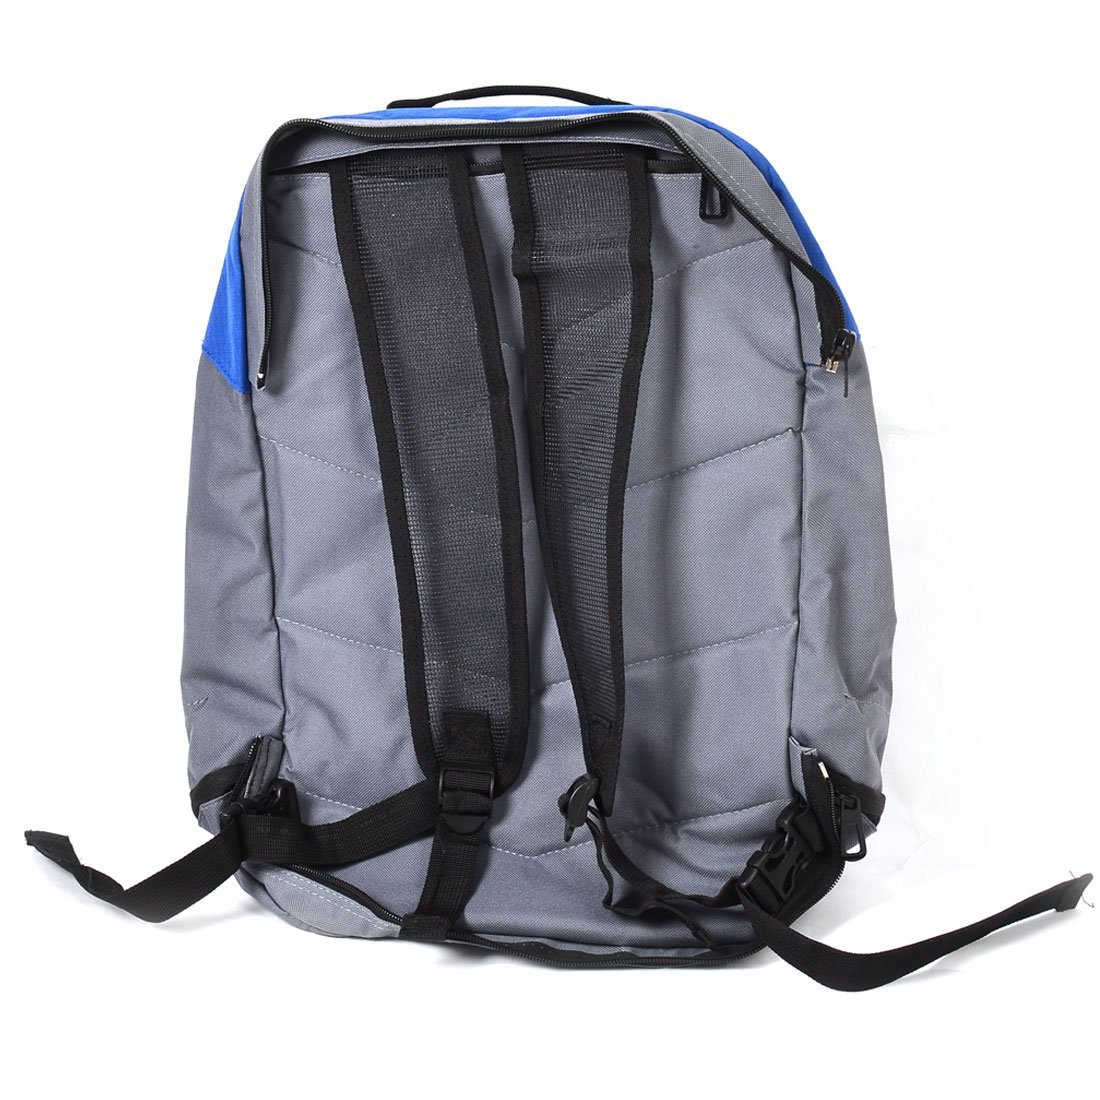 Amazon.com : Assento DealMux poliéster traseira da bicicleta Waterproof Triplo bicicleta Saddle Bag azul w Raincoat : Sports & Outdoors